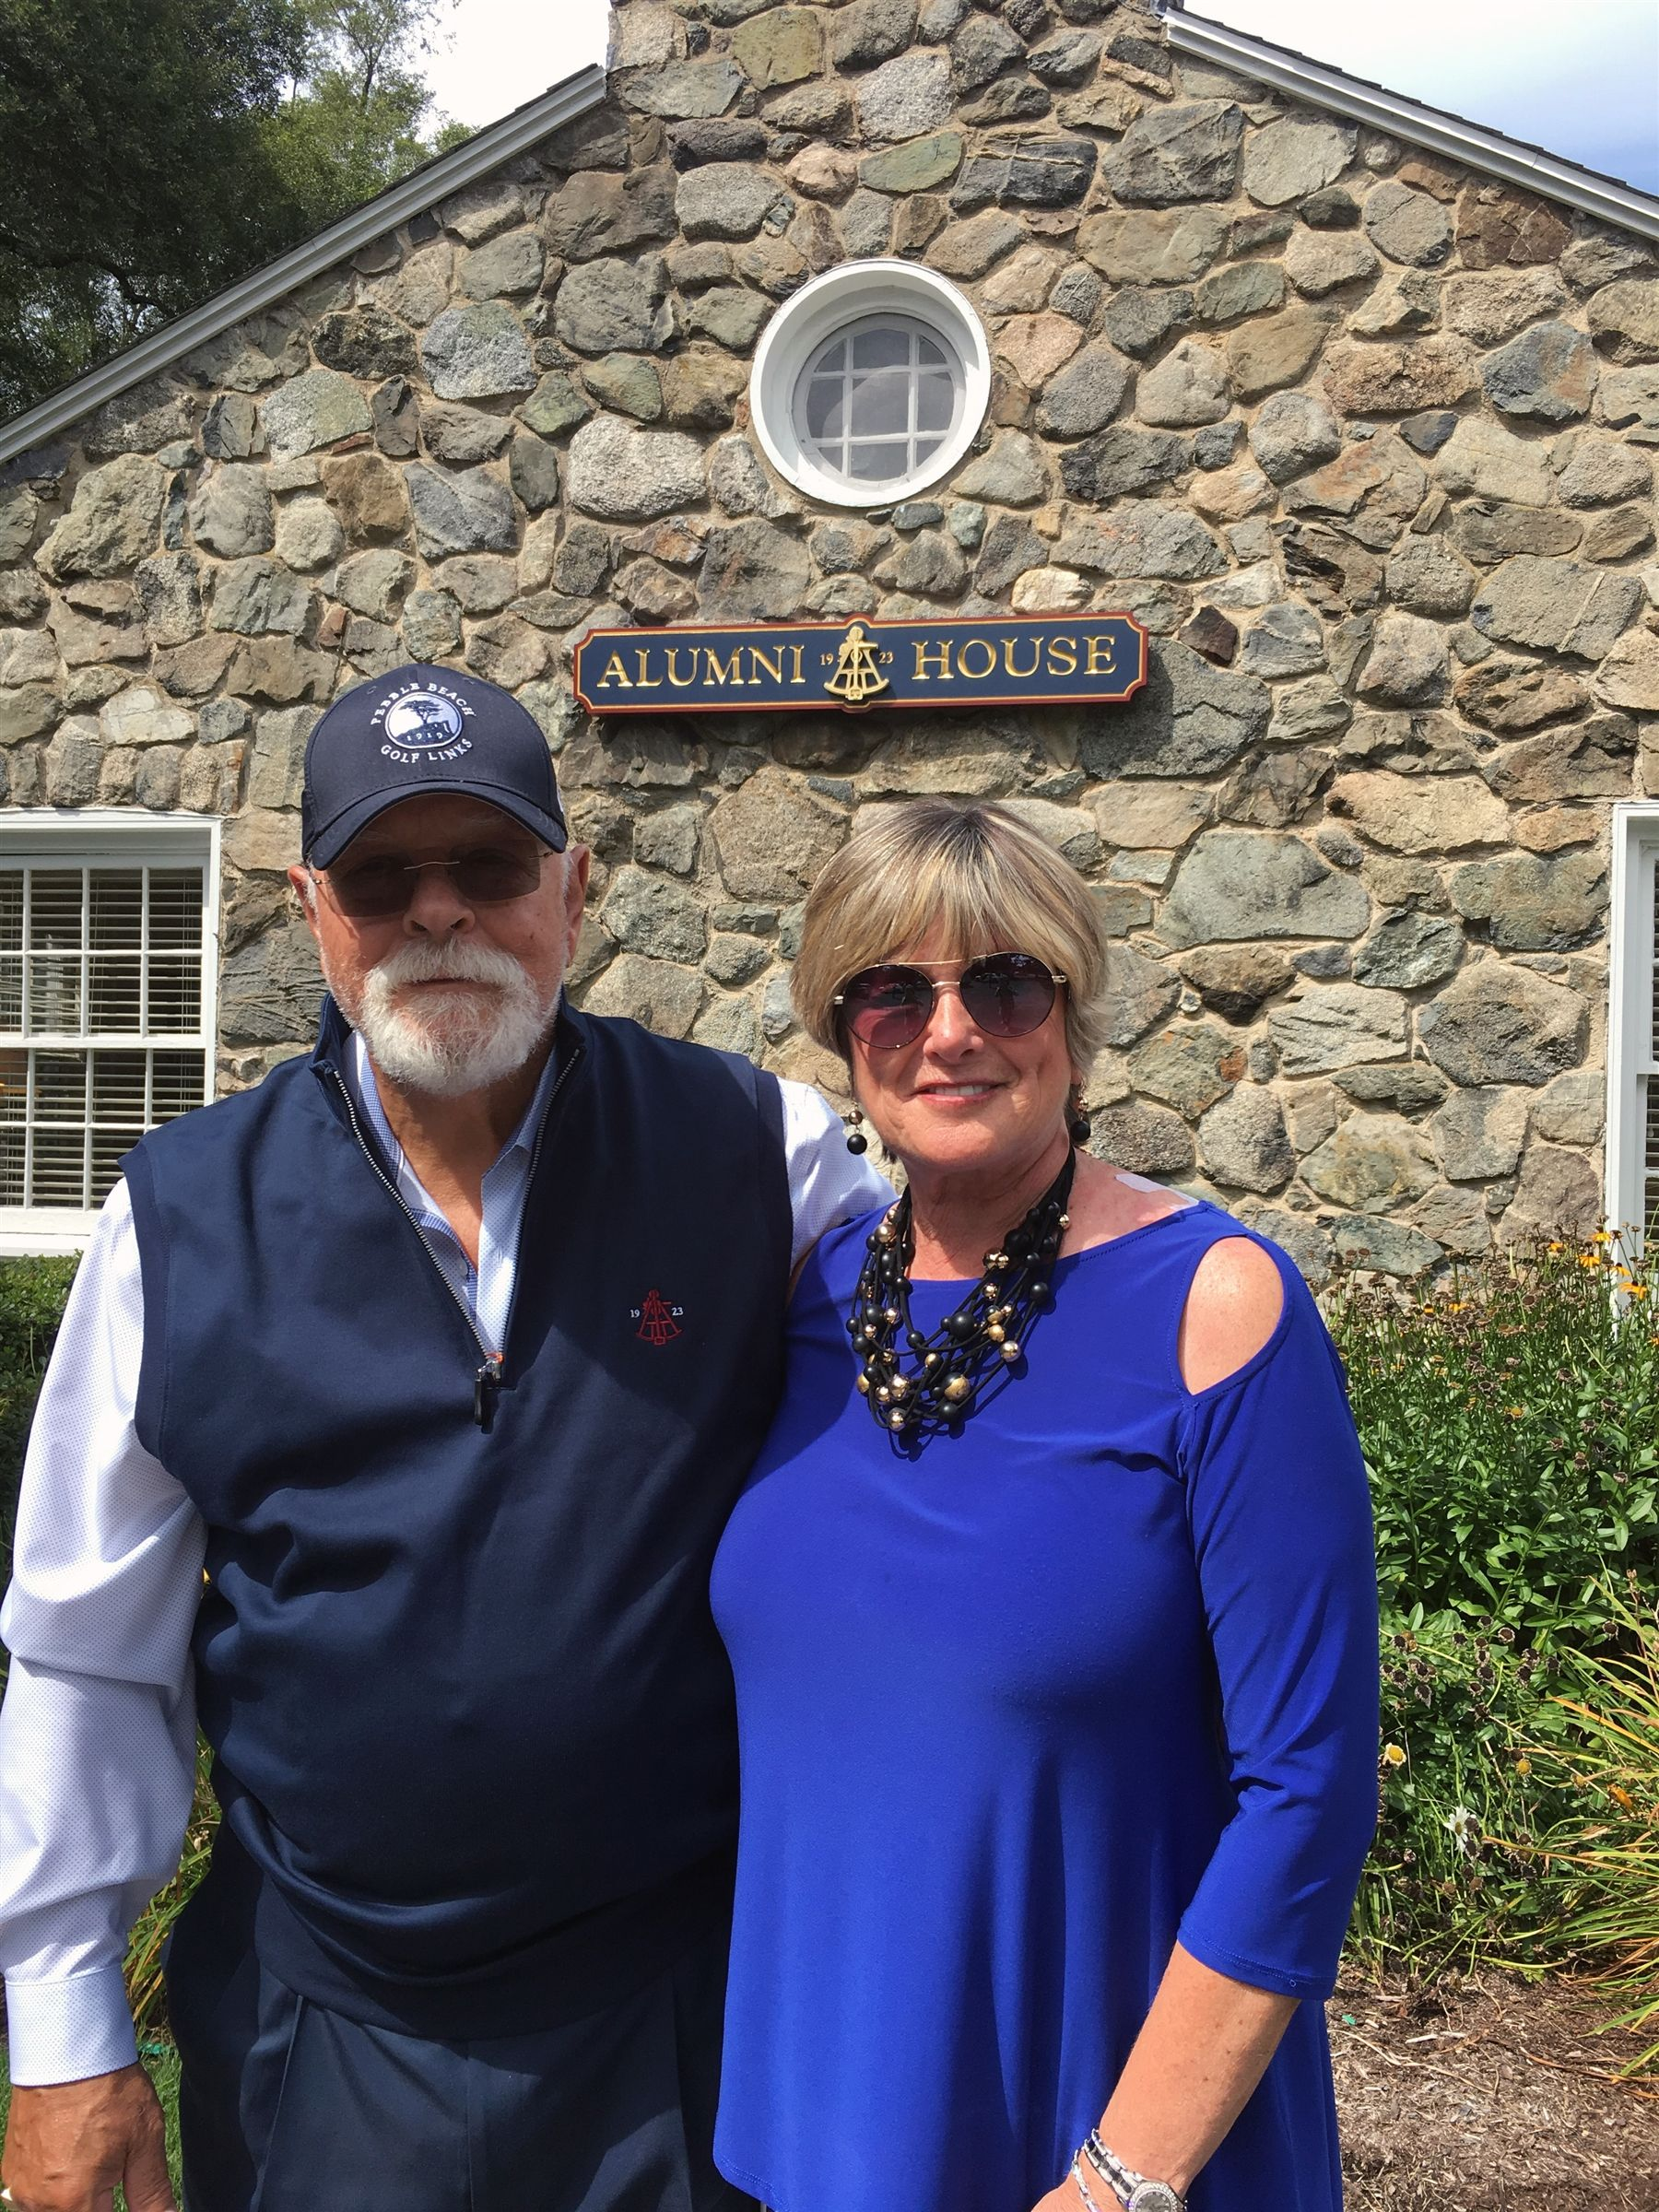 Valerie and Barry Taintor '58 visiting Alumni House from Connecticut on August 28, 2019.